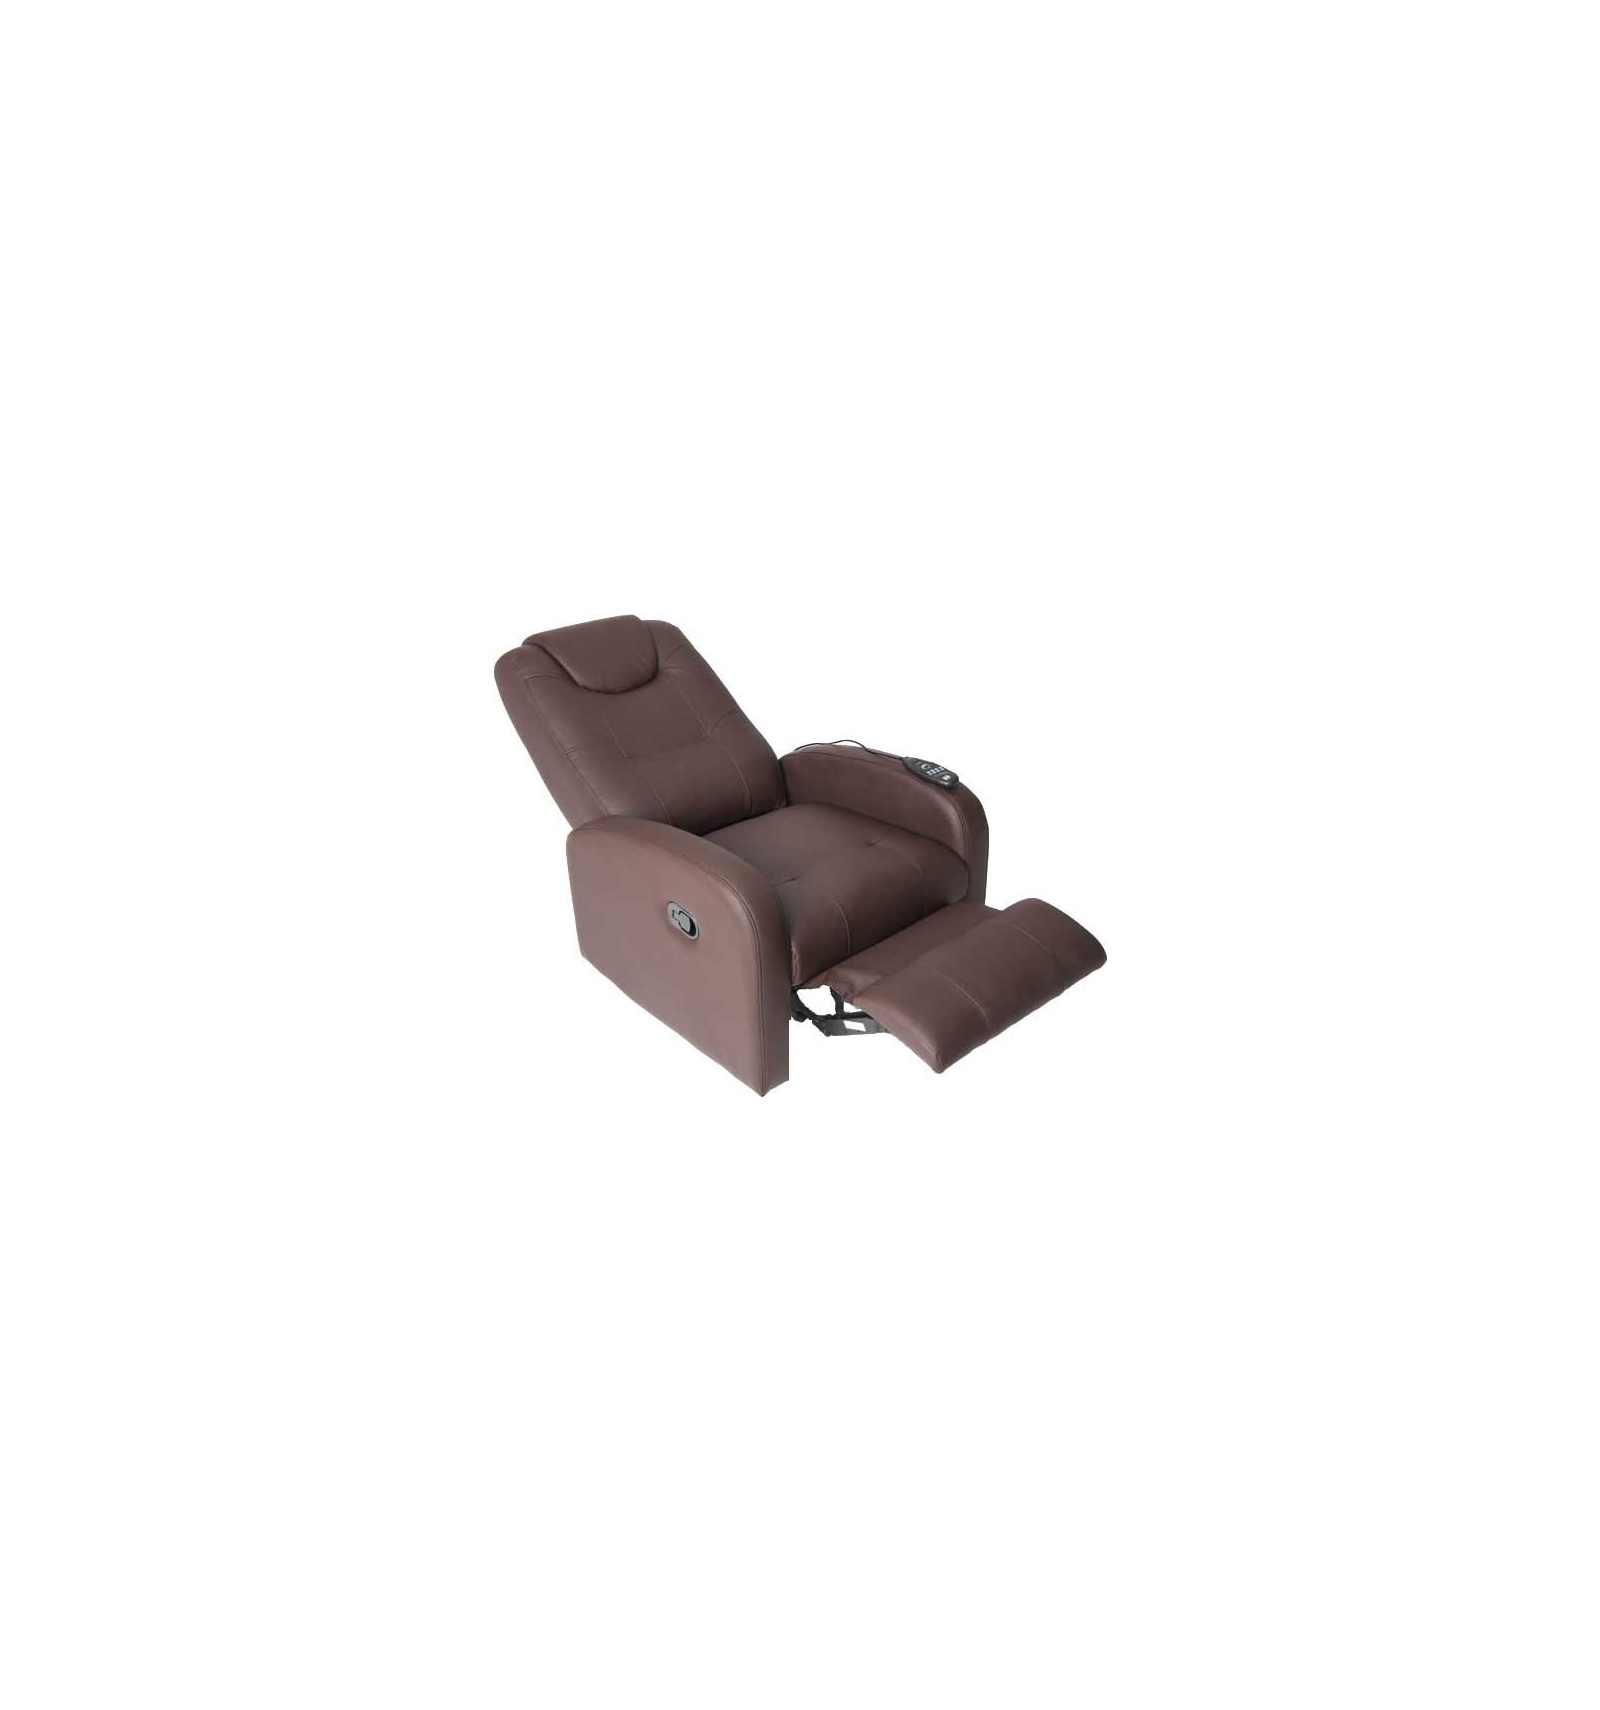 Relaxation Fauteuil Massant Relaxation Relaxation Fauteuil Fauteuil Fauteuil Fauteuil Relaxation Massant Massant Relaxation Massant IbyvYf76g